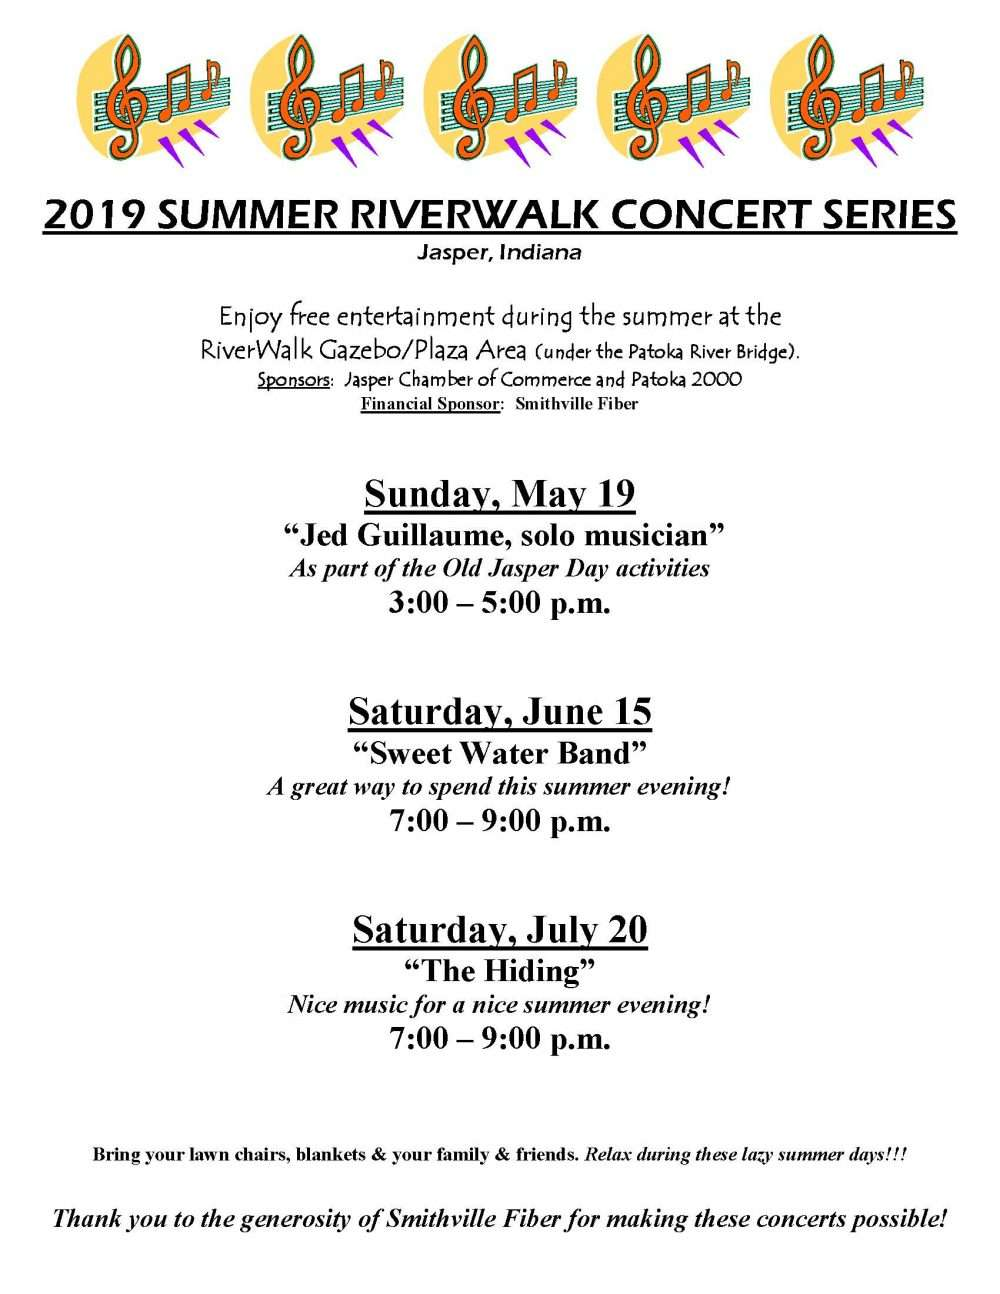 RIVERWALK CONCERT SERIES 2019